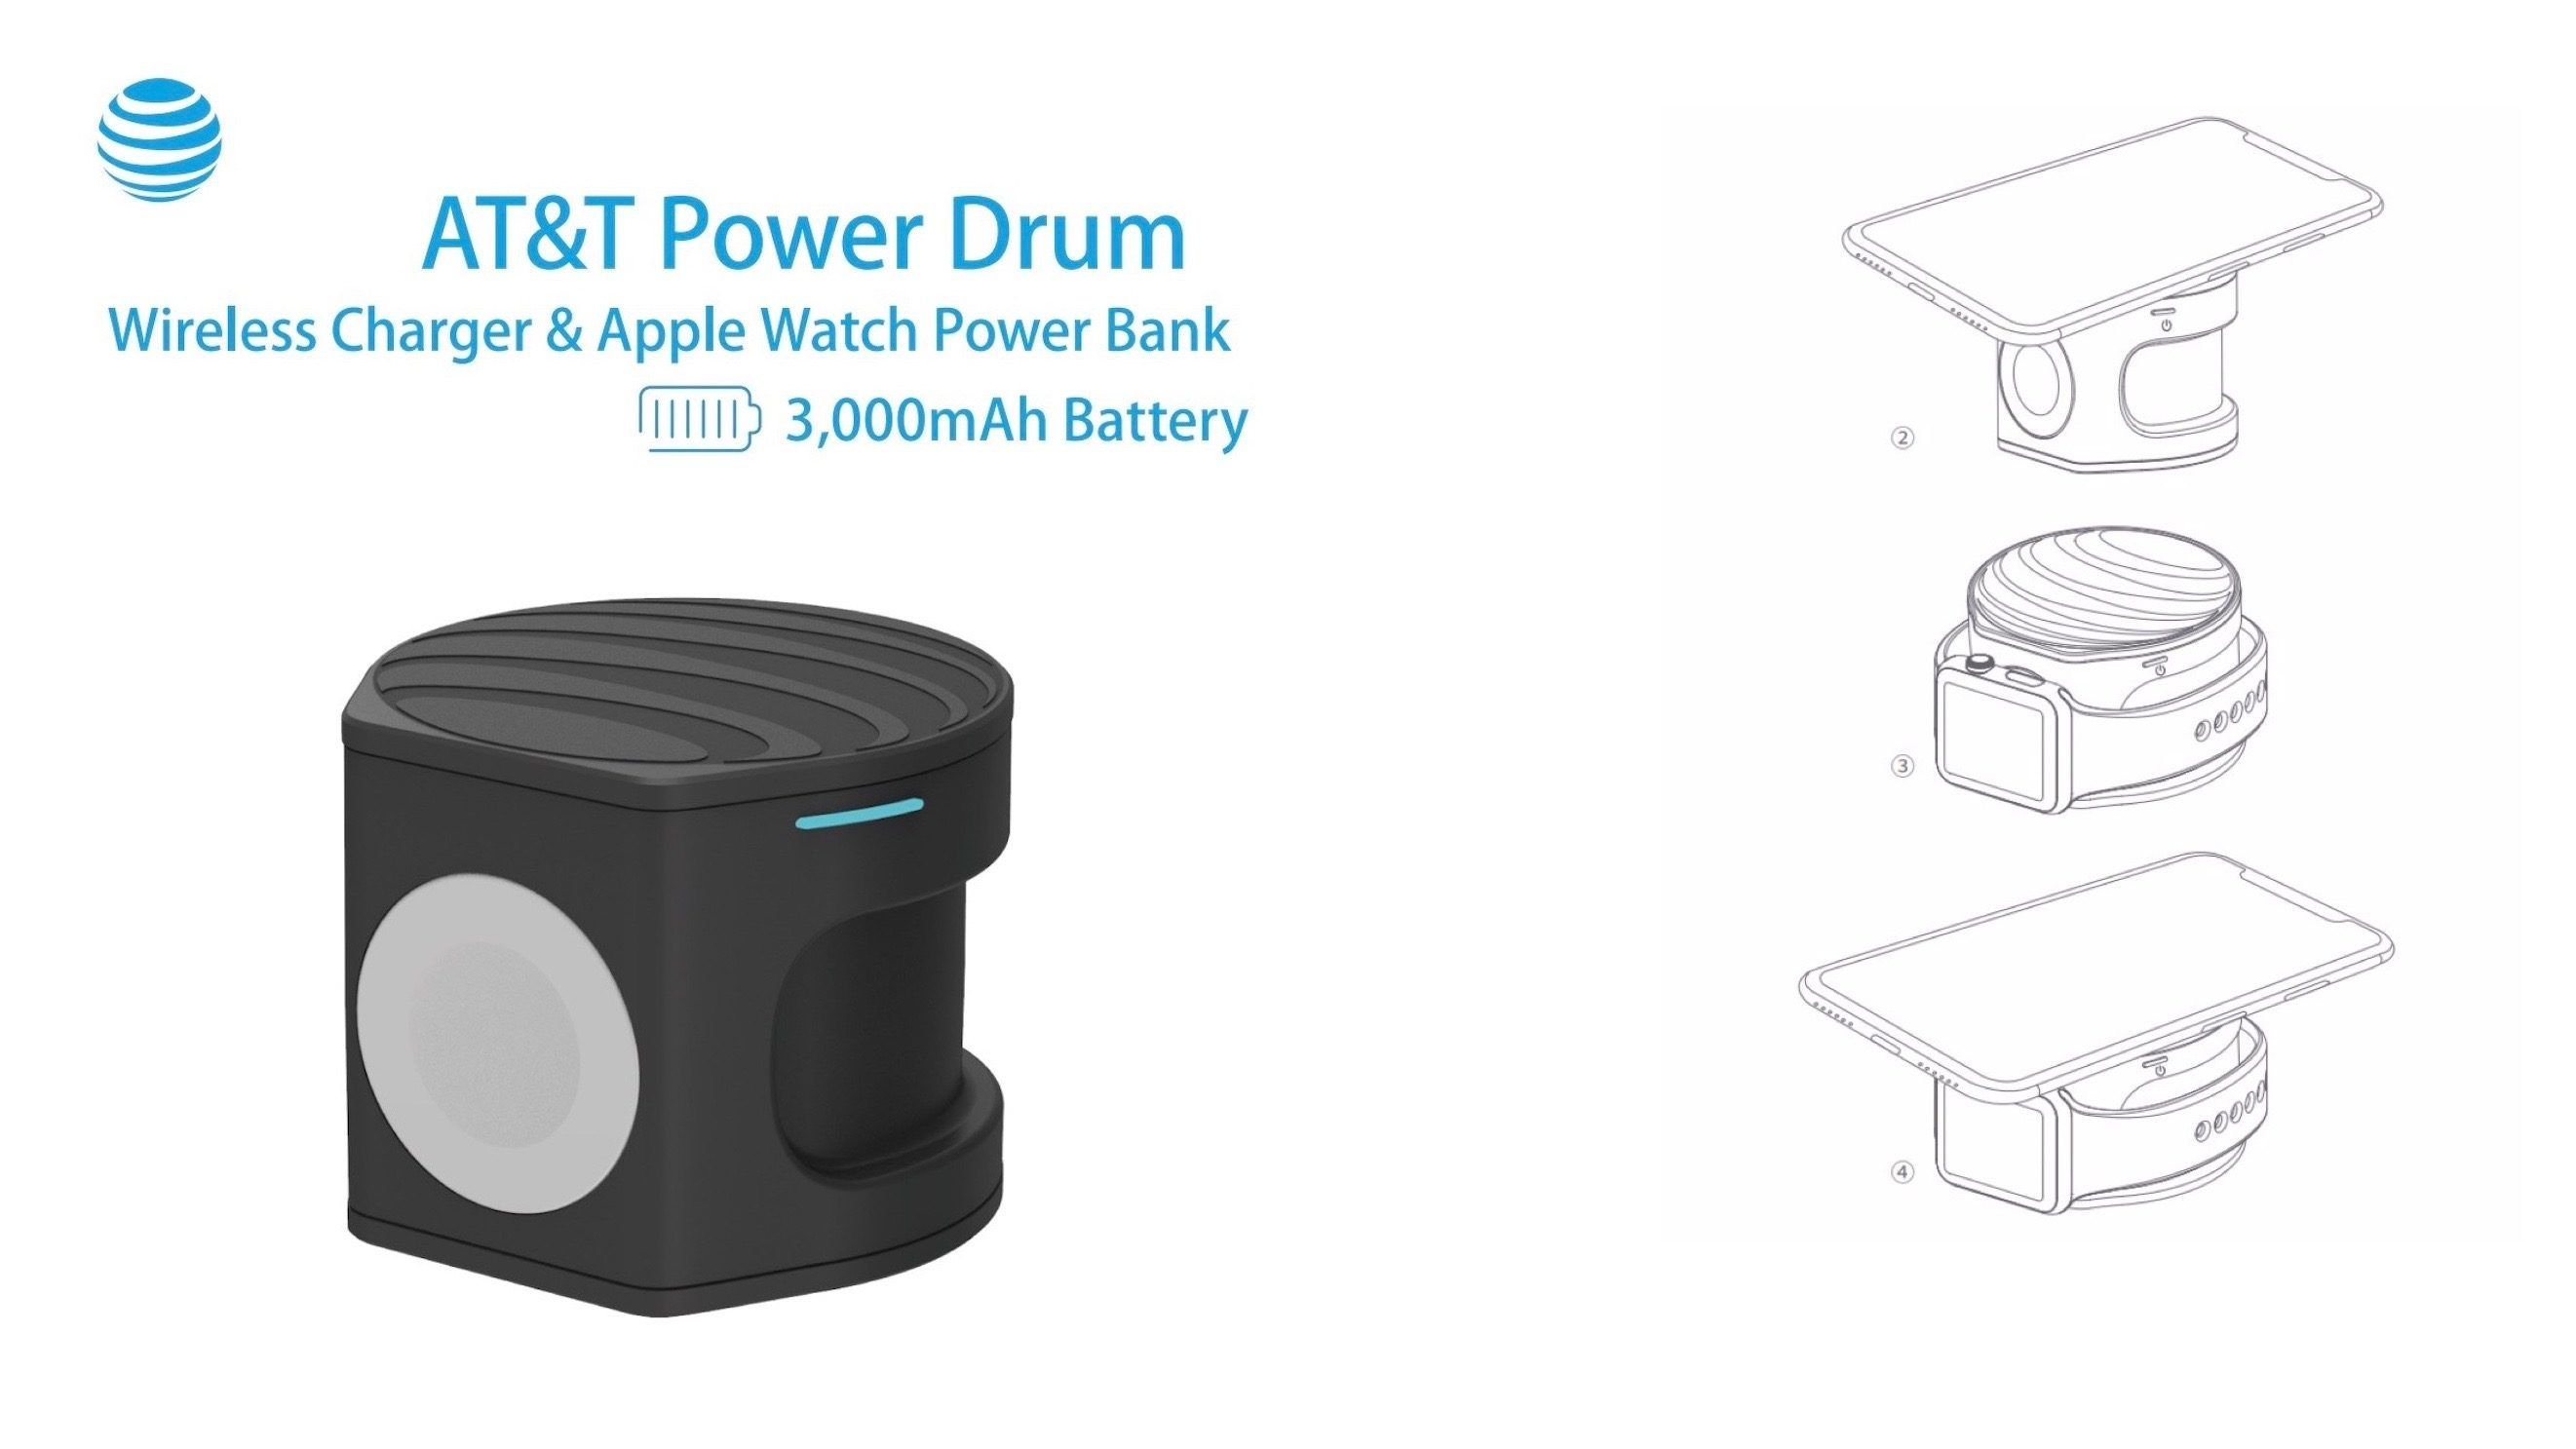 AT&T planning 2in1 'Power Drum' Apple Watch & iPhone